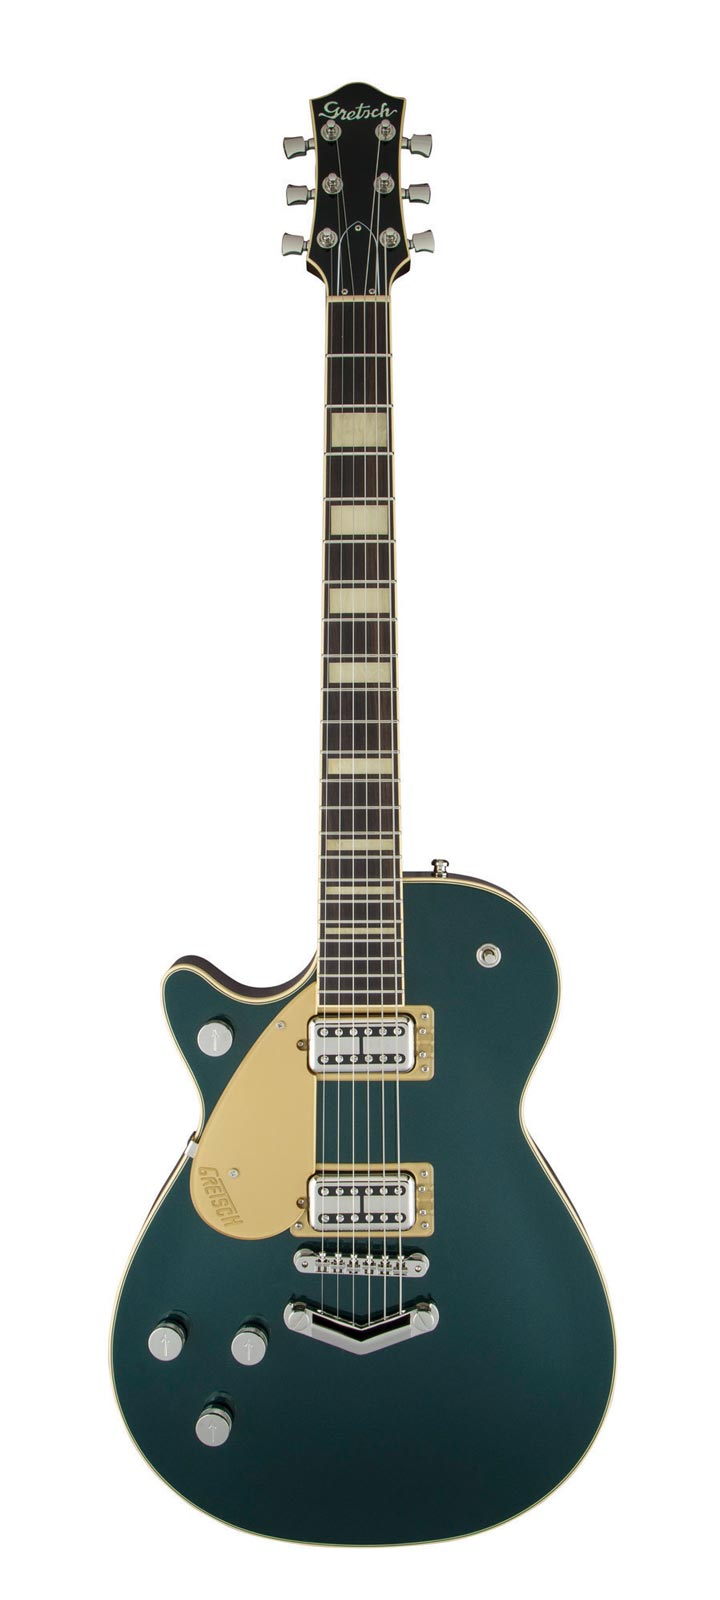 Gretsch G6228 Players Edition